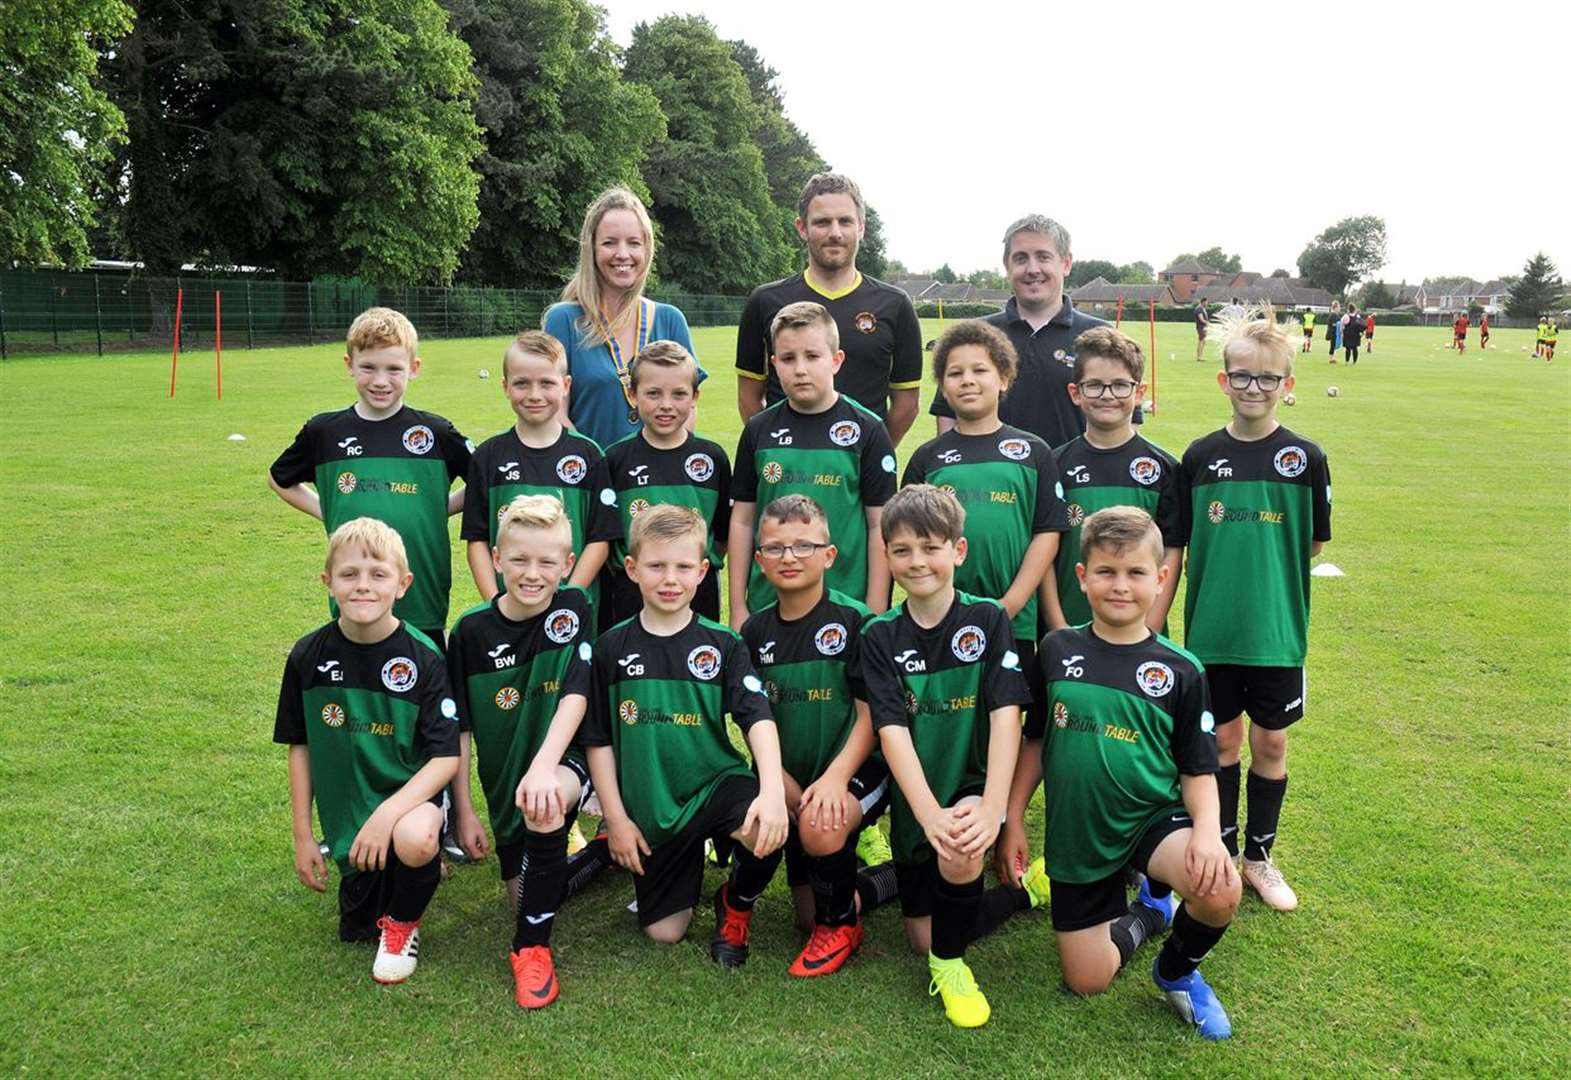 YOUTH FOOTBALL: Festival support for Holbeach team